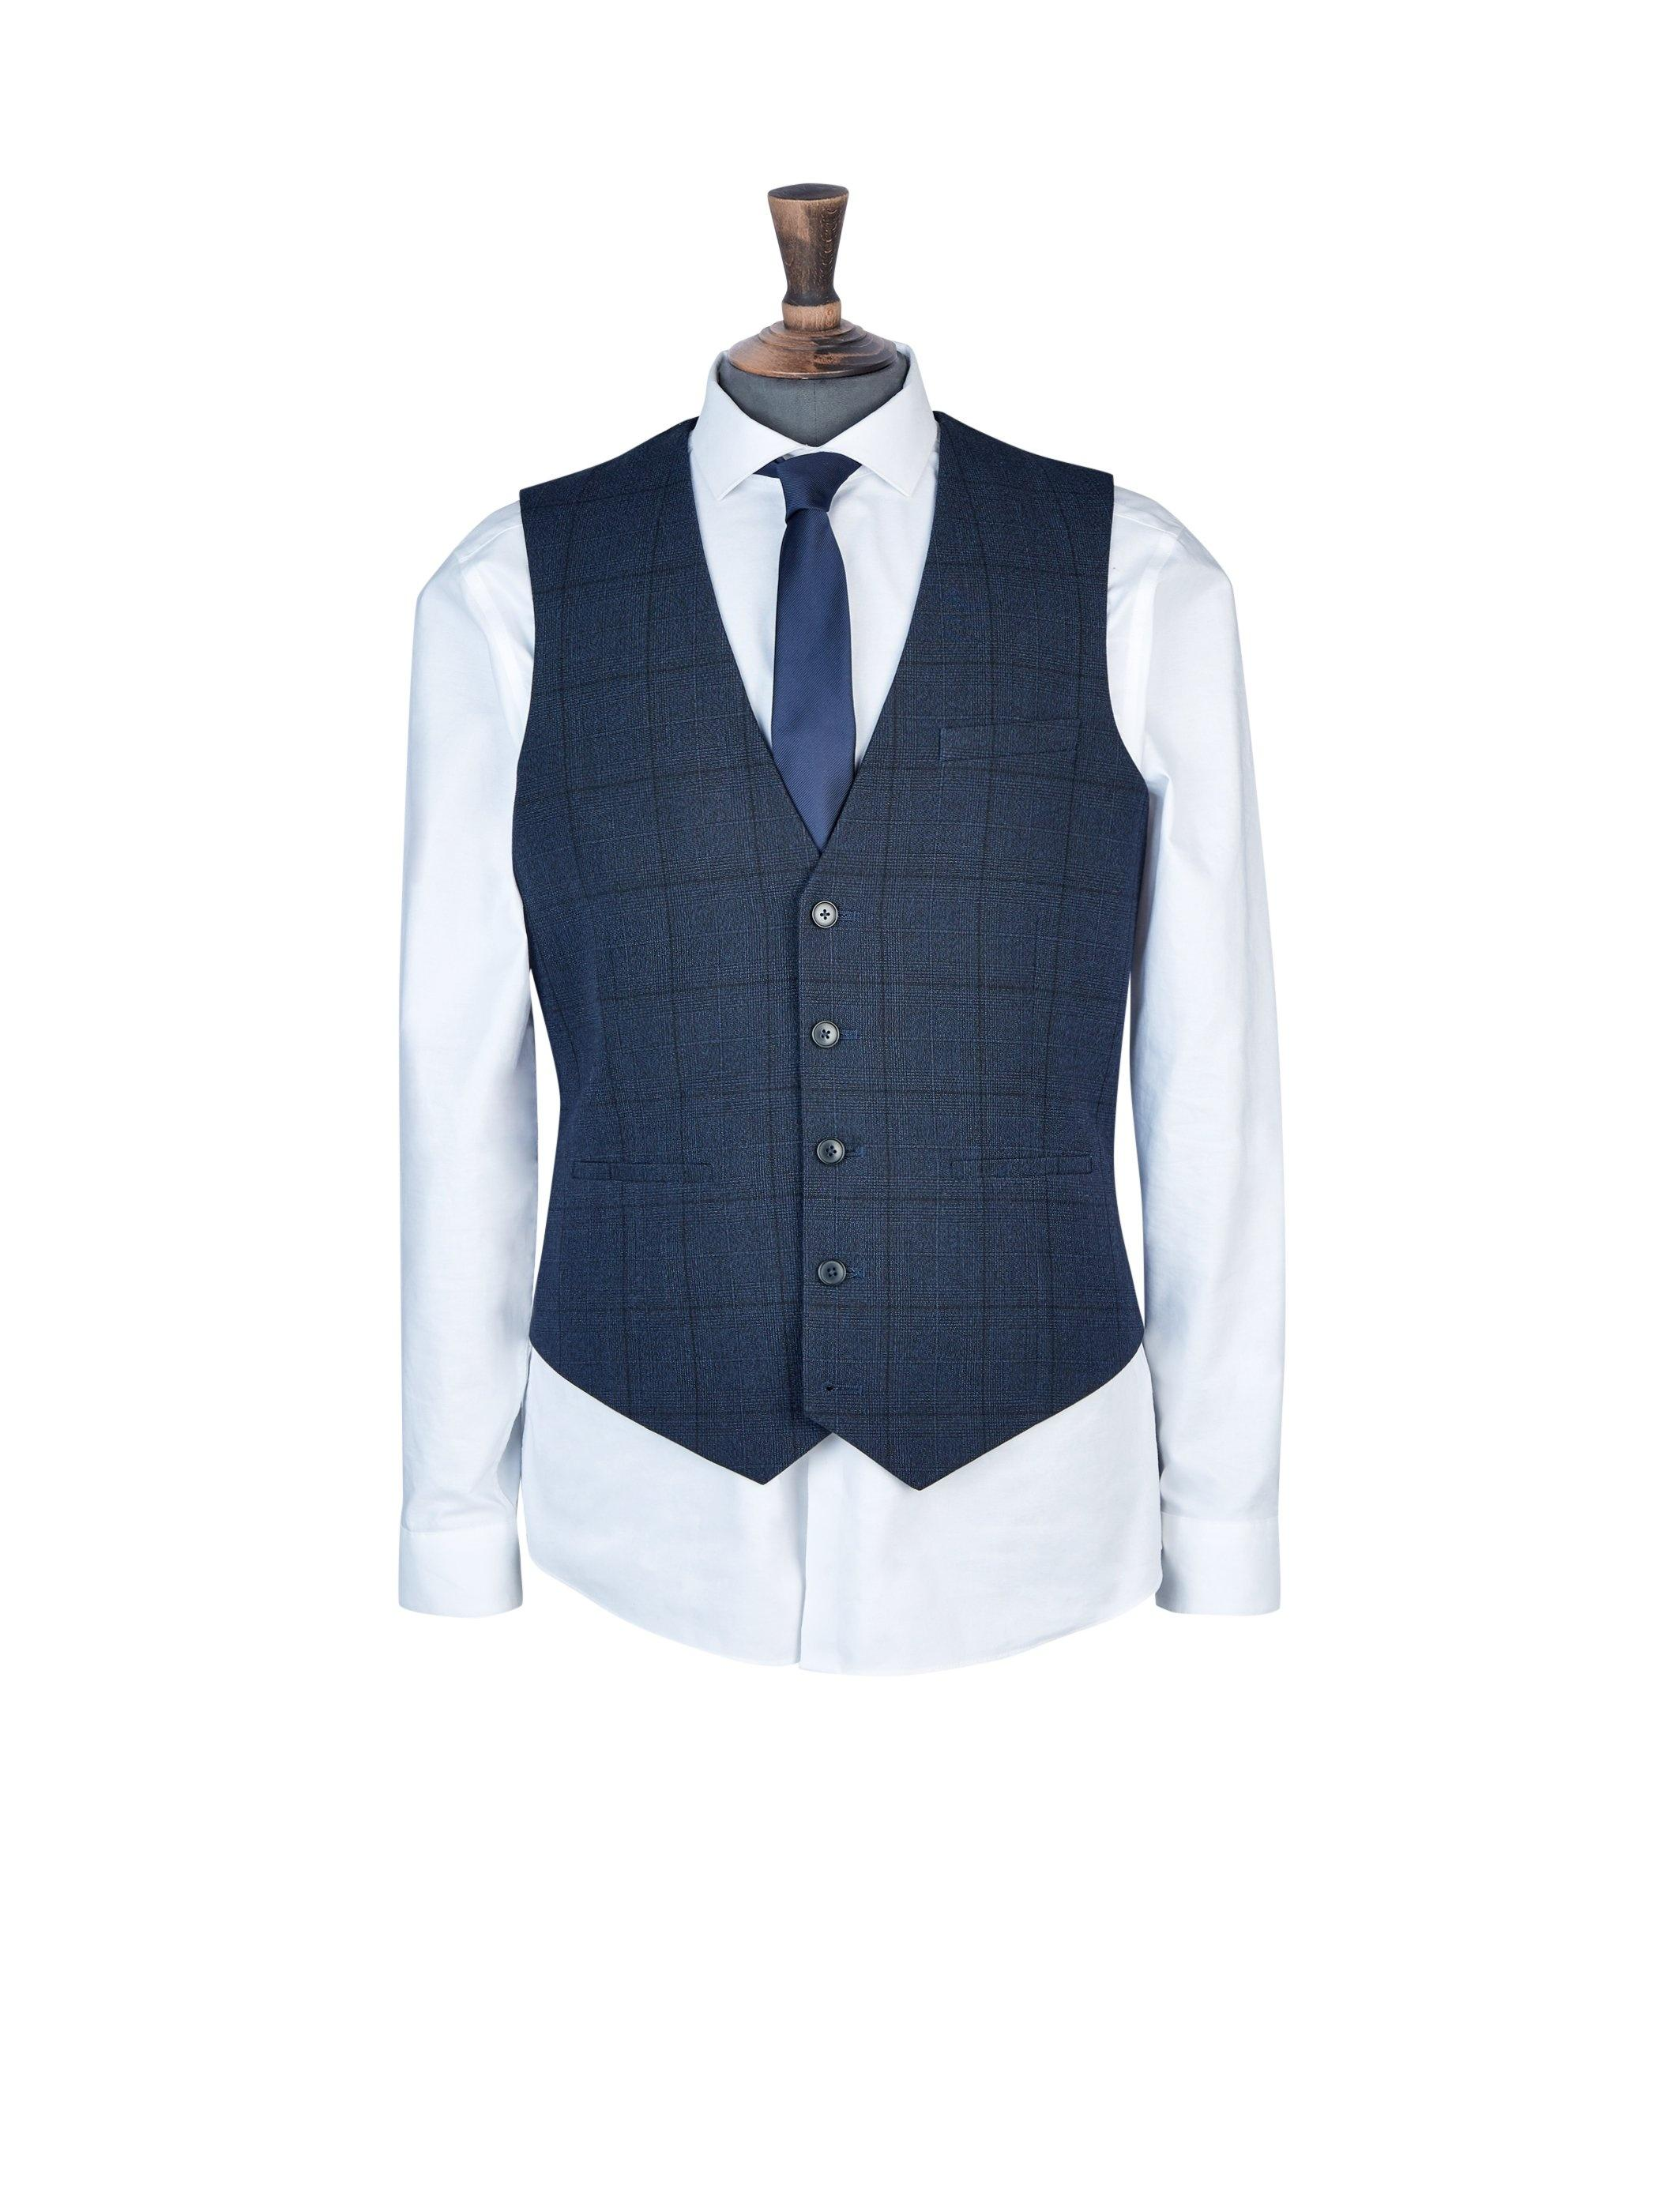 3003f9e3b2ada6 Burton Navy Jaspe Check Tailored Fit Waistcoat in Blue for Men - Lyst